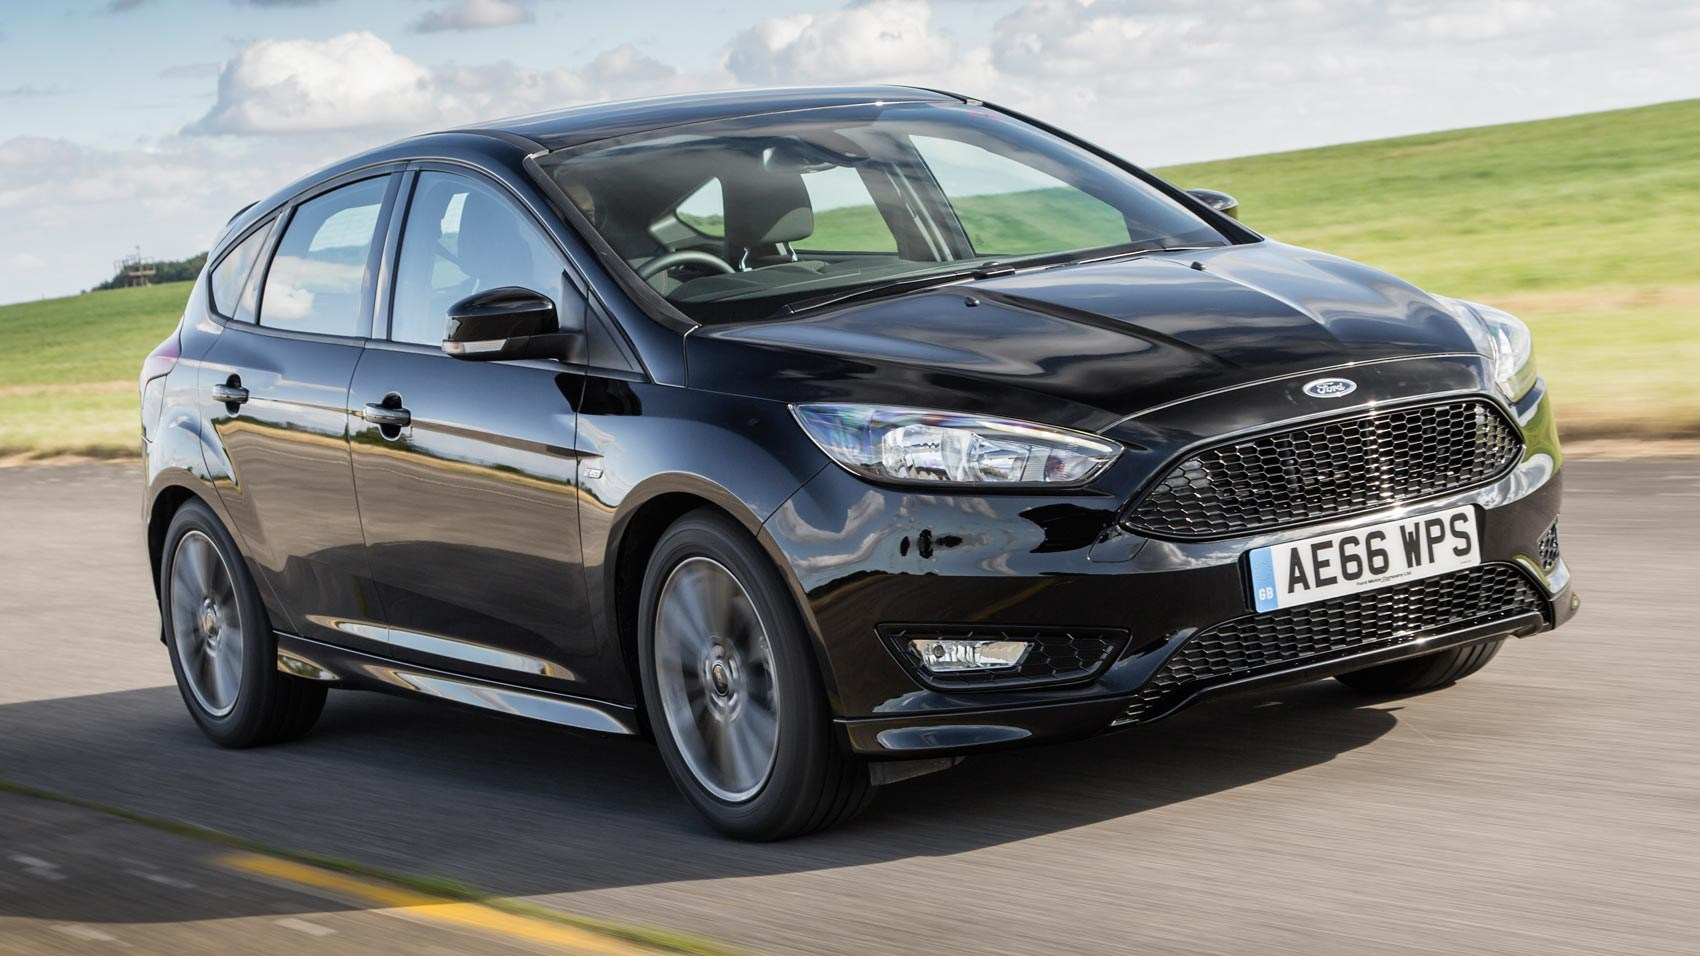 Ford Lease Deals 2017 >> Ford Focus ST-Line 1.5T Ecoboost 150 (2016) review by CAR Magazine